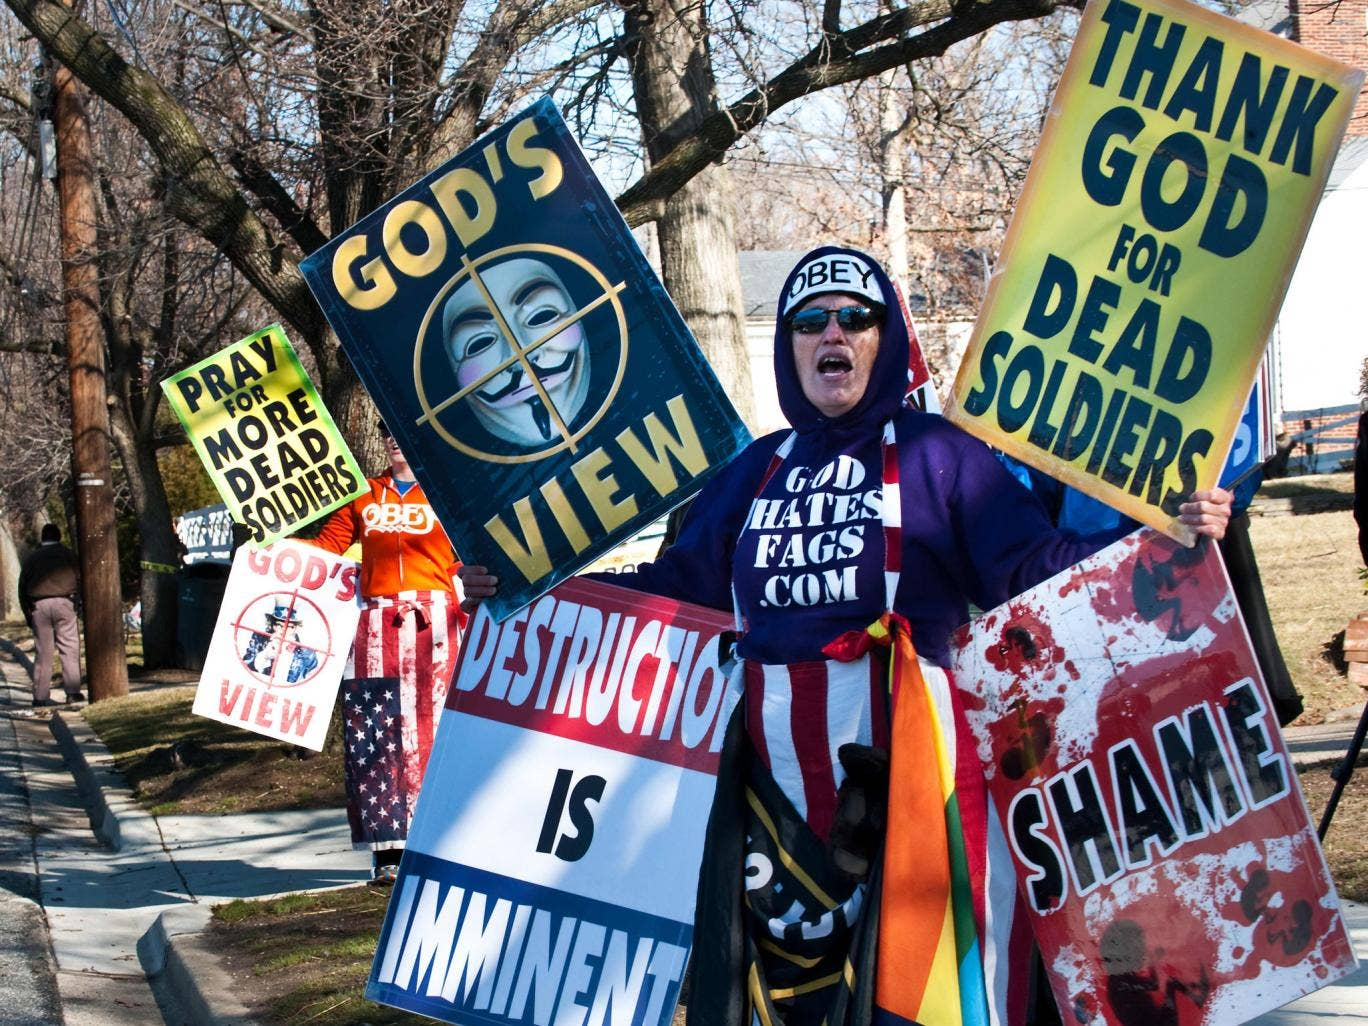 Shirley Phelps-Roper of the Westboro Baptist Church, Kansas, stages a protest across the street from a high school near Washington